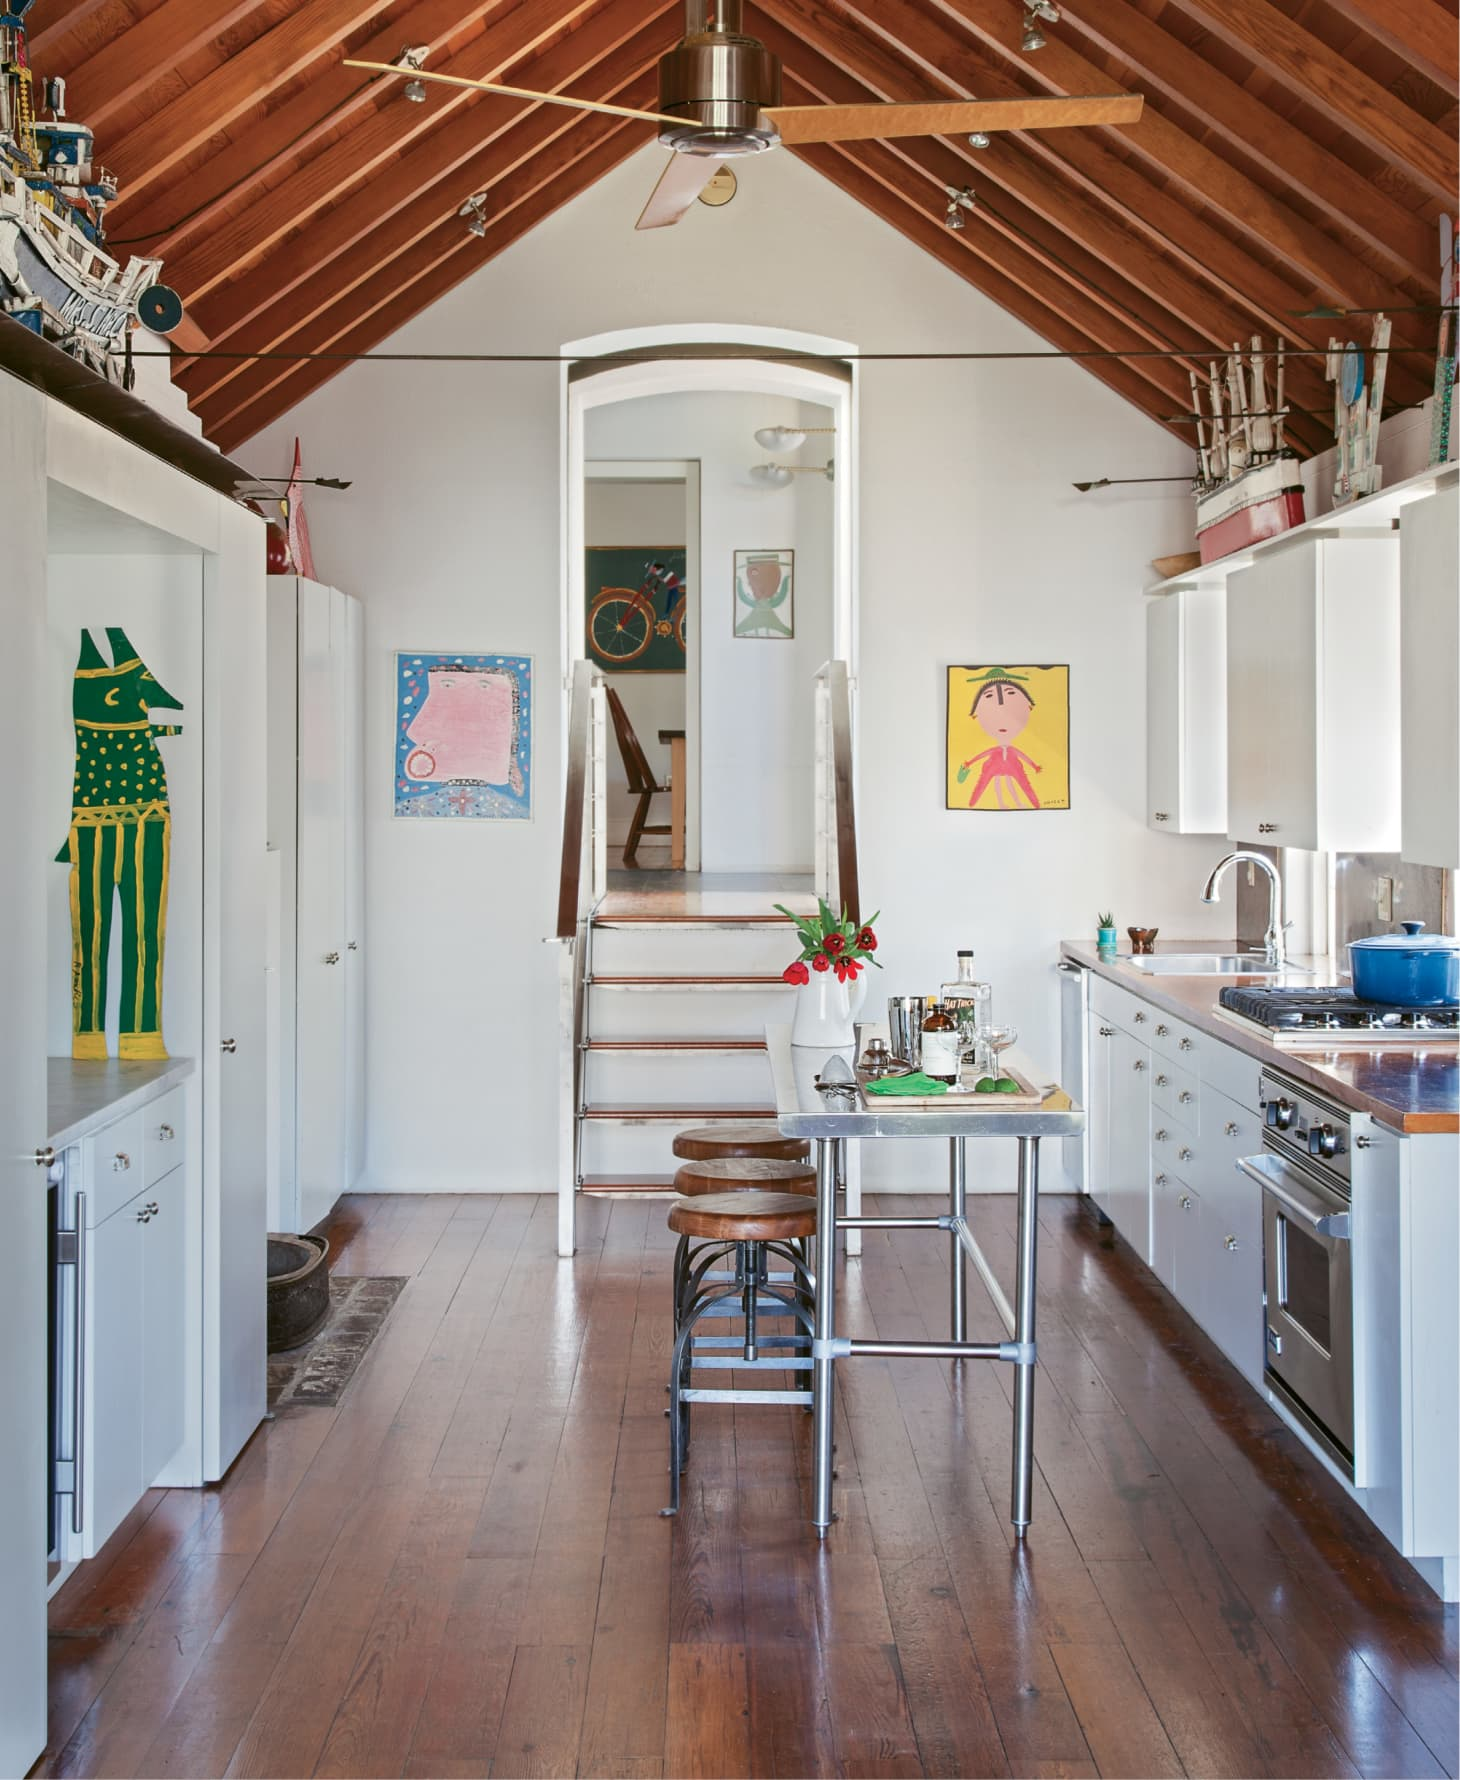 South Carolina Apartments: 5 Of The Most Beautiful Homes In Charleston, South